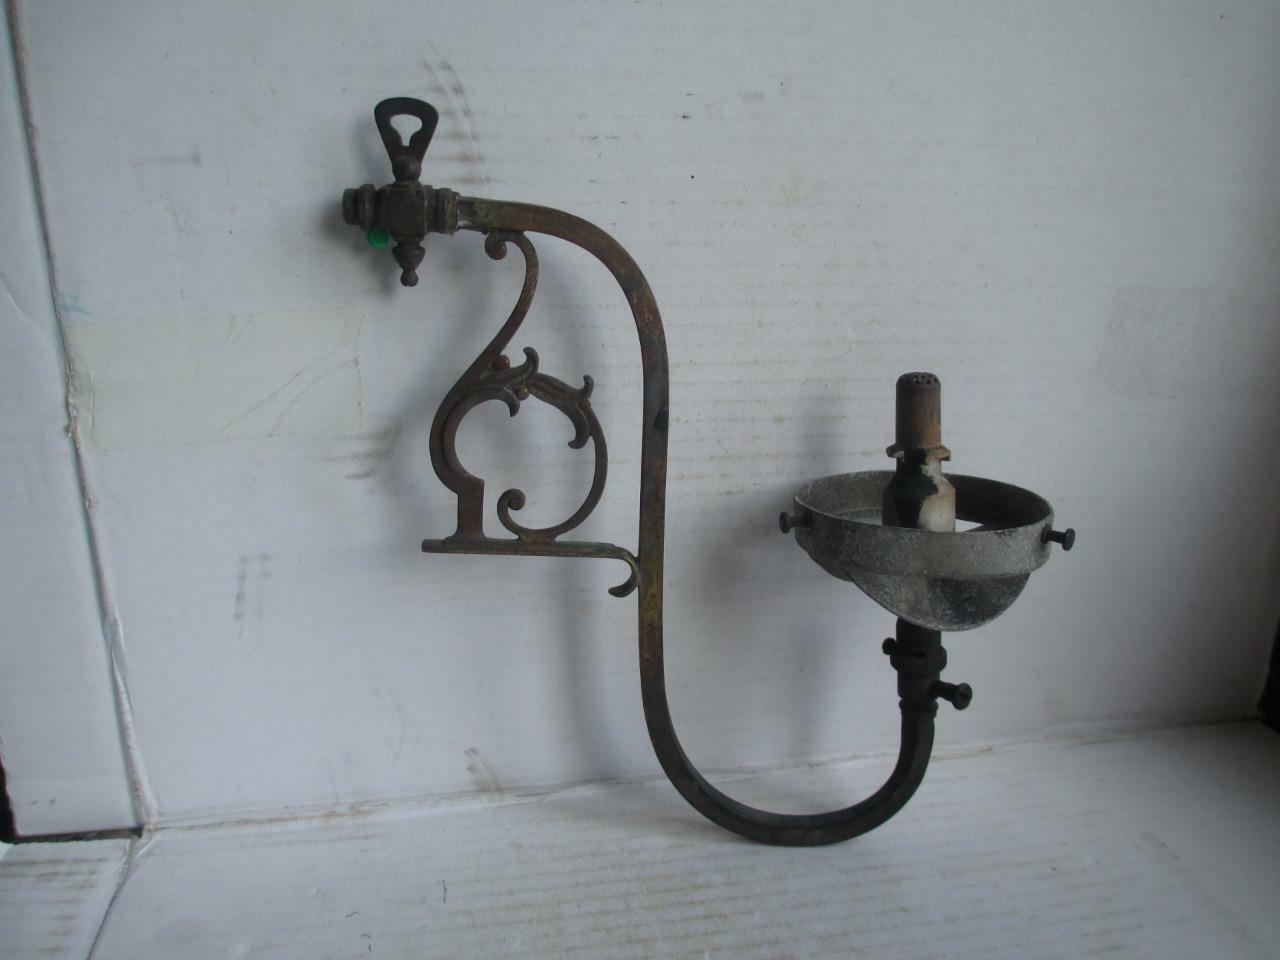 Wall Gas Lamps : Vintage Gas Lamp, Wall Light Fitting. Brass/aluminium. British Made. ?2.99 - PicClick UK